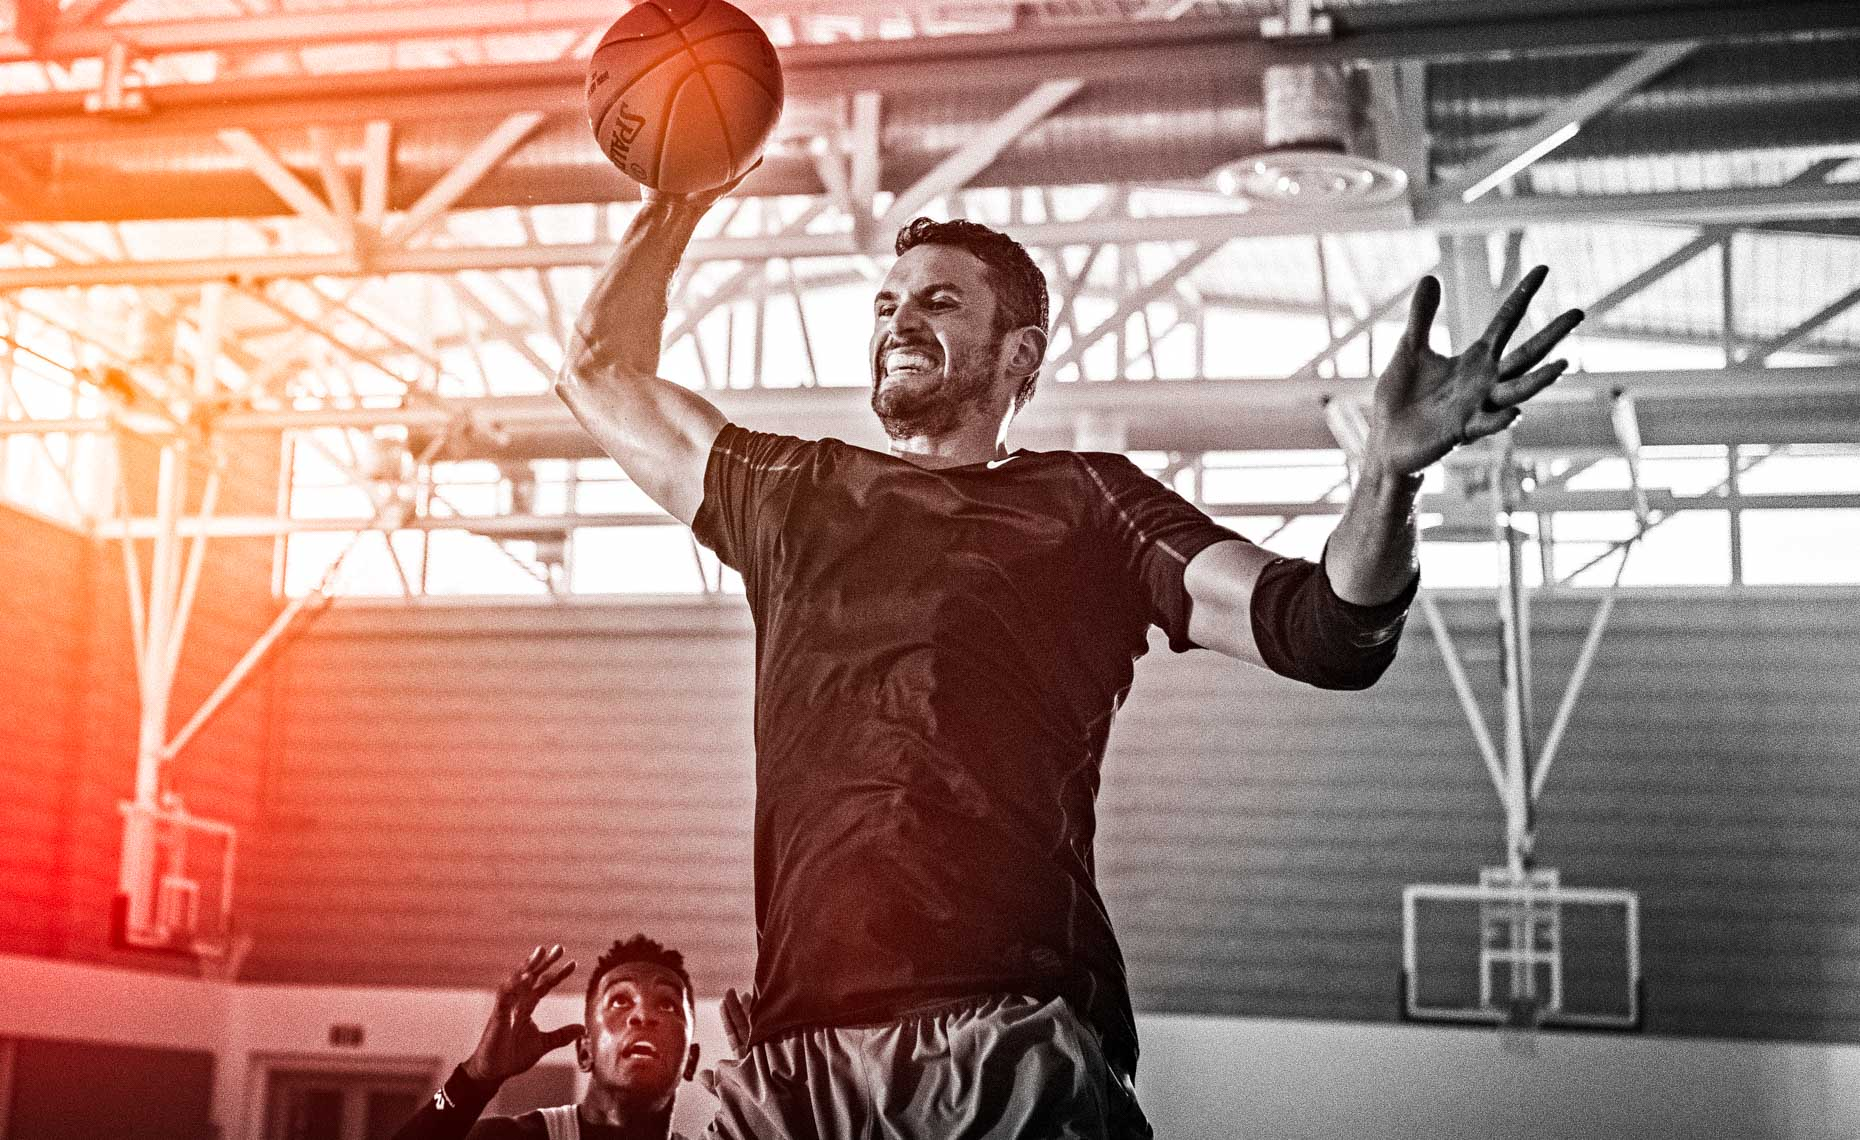 Kevin Love by Tim Tadder for Shock Doctor, Cleveland Cavaliers Forward